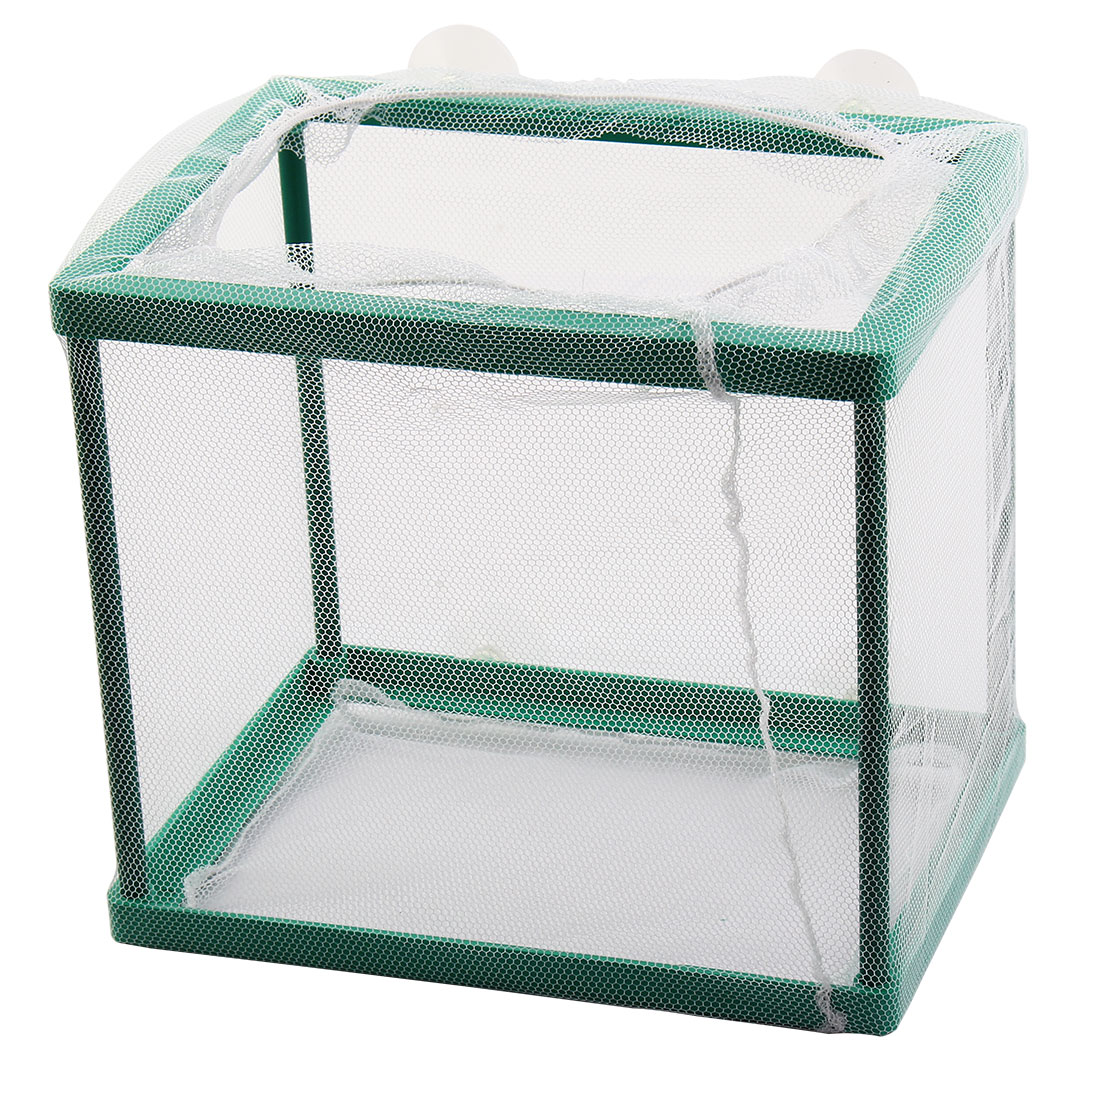 Aquarium Fish Tank Fry Net Breeder Breeding Hatchery